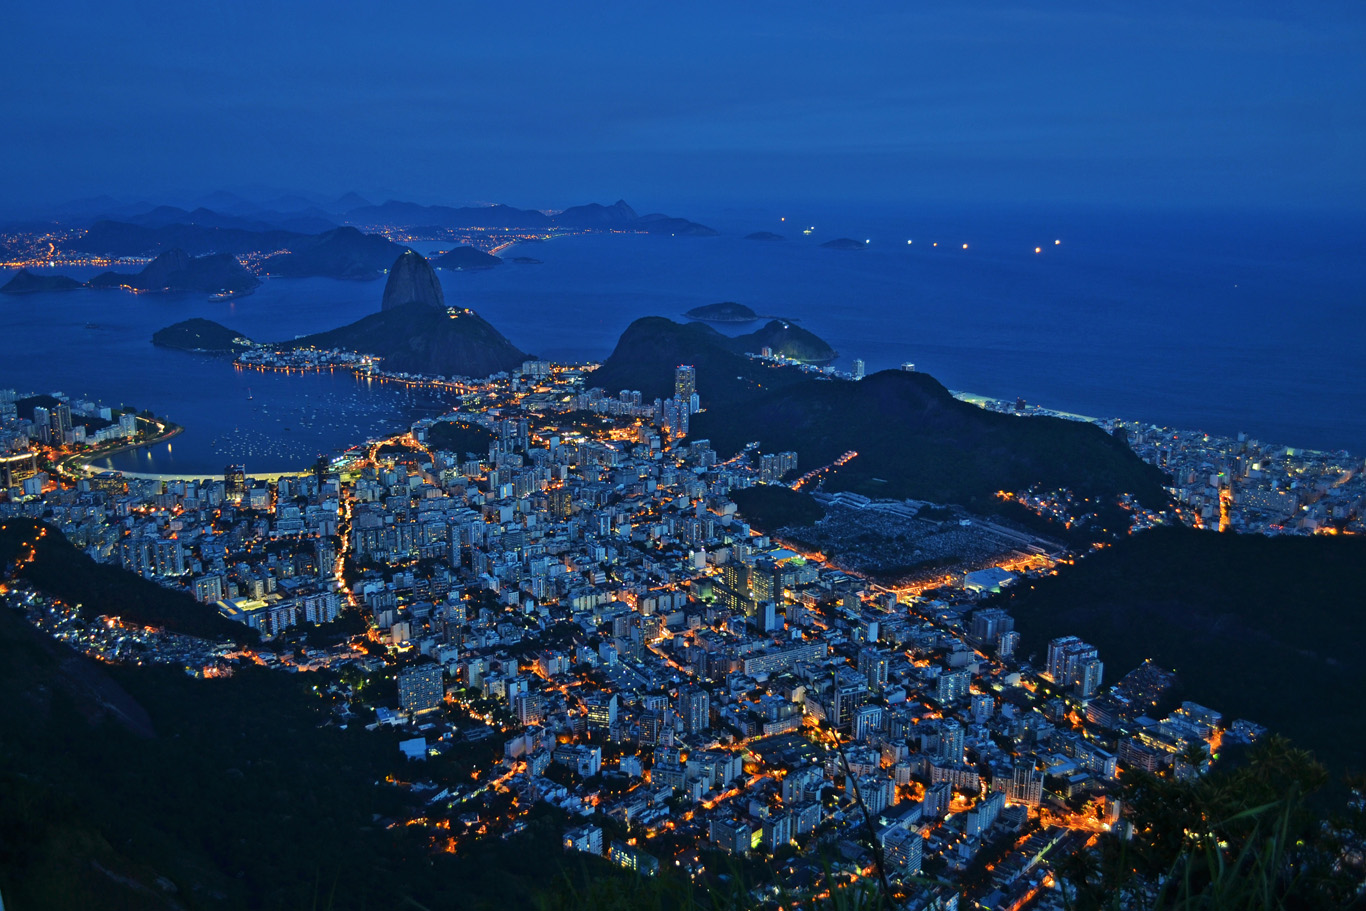 Rio after dark - view from Corcovado hill